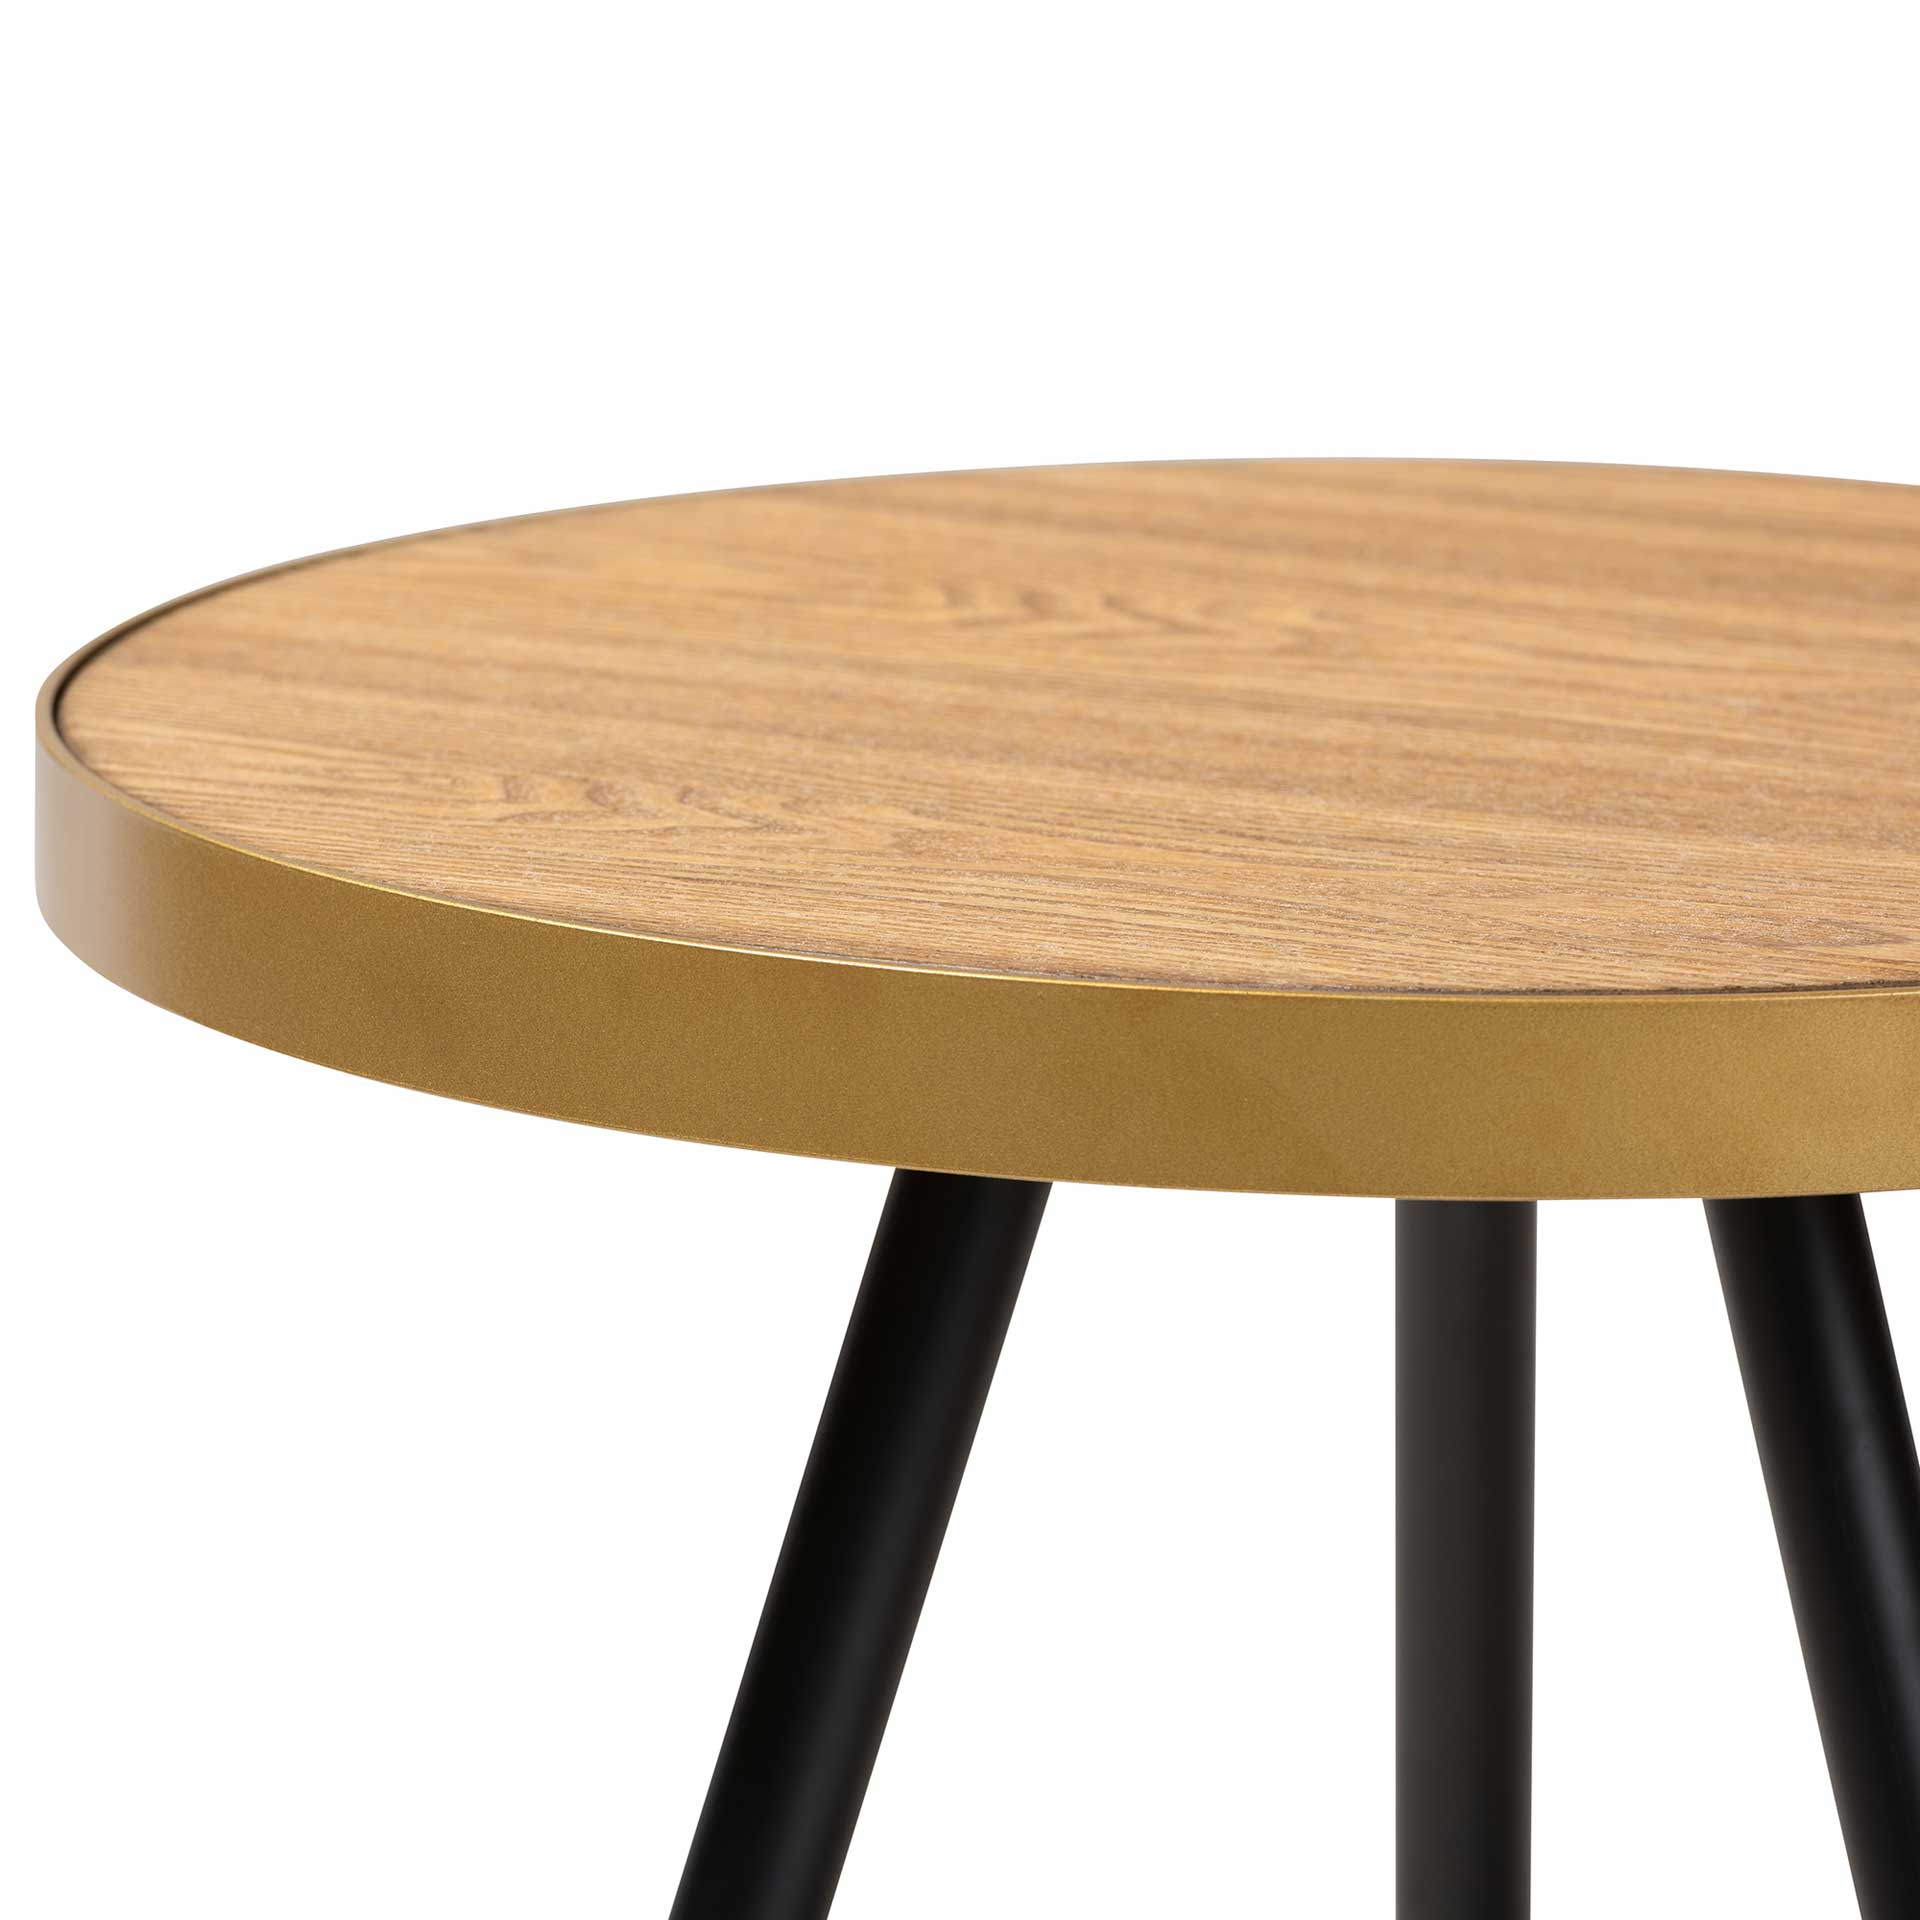 Seattle Wood/Metal End Table Walnut/Black/Gold